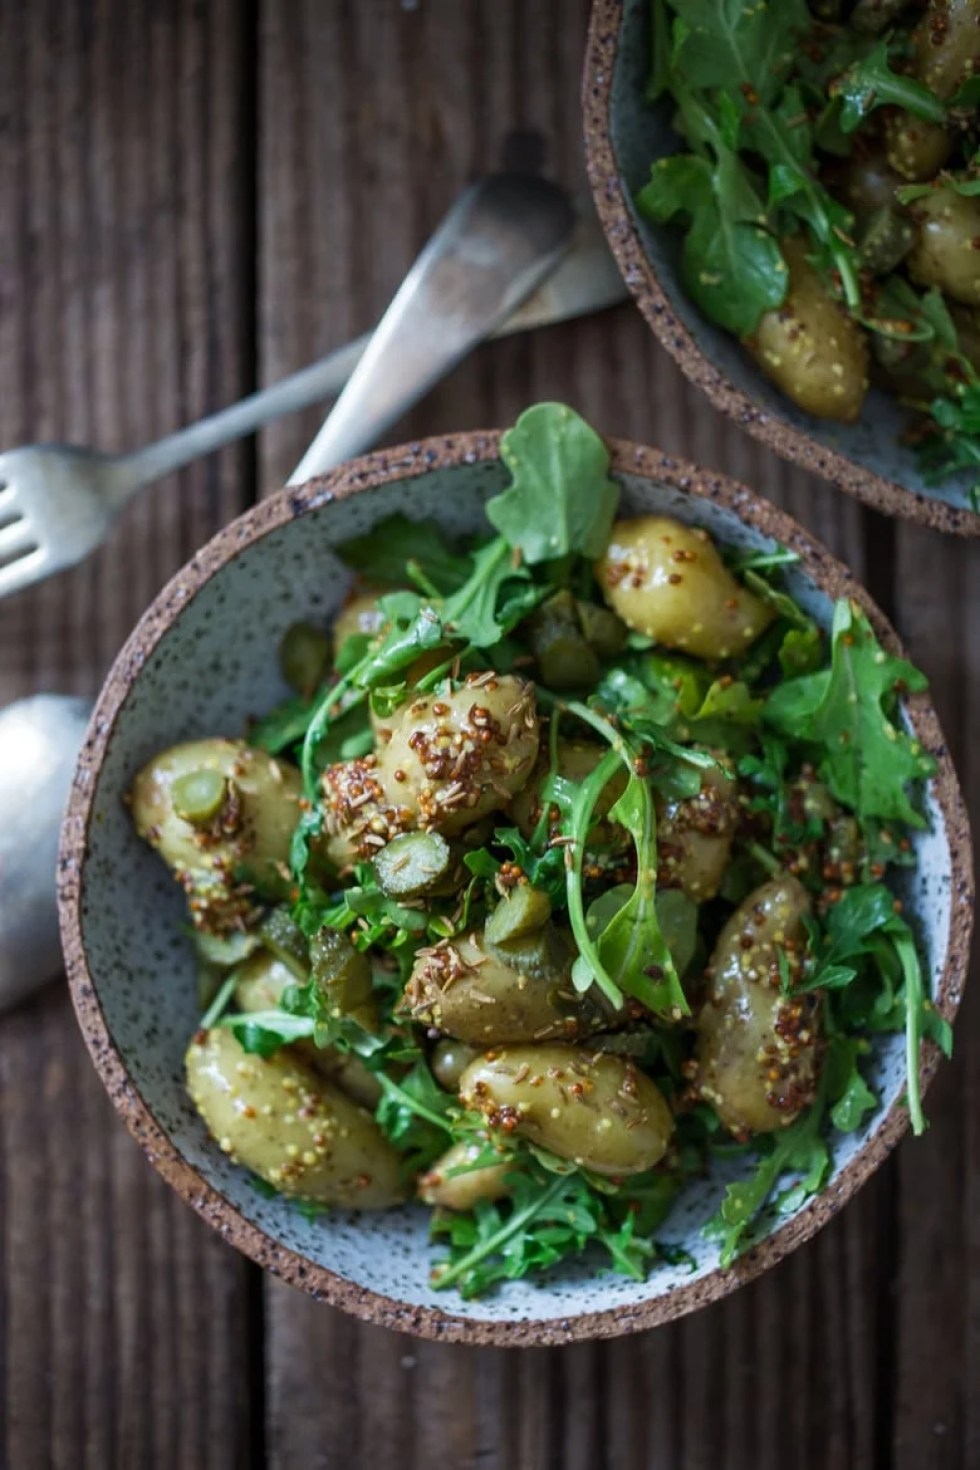 12 Delicious Spring Recipes to celebrate the season!  A healthy lightened up Potato Salad with Mustard Seed dressing, cornichons and baby Arugula.   www.feastingathome.com